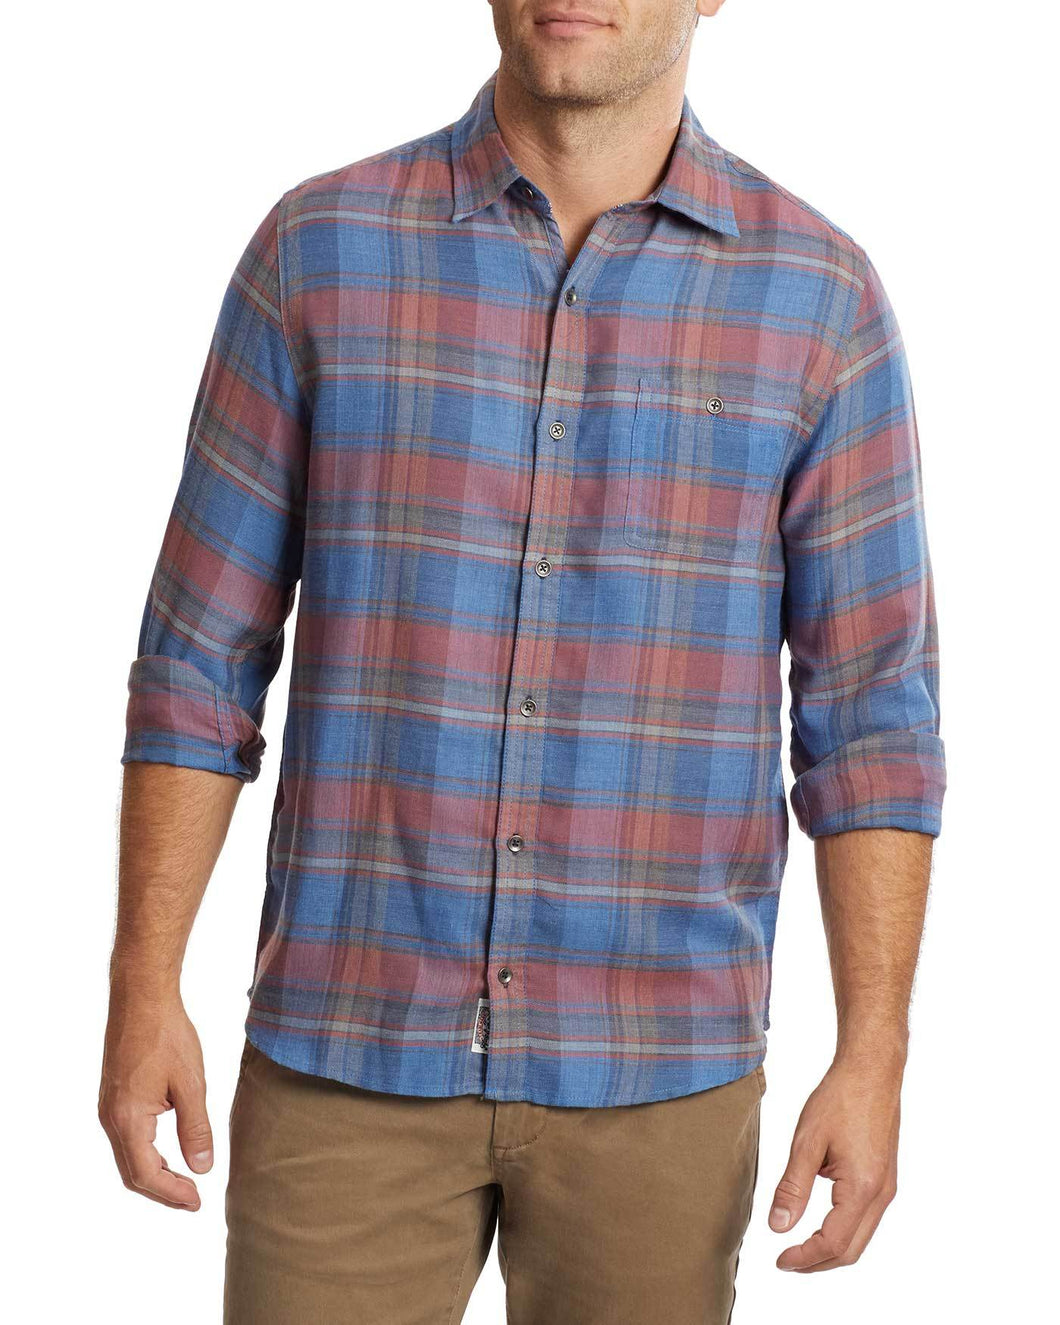 FLAG & ANTHEM - Belding Button Down Shirt - Guys and Co.